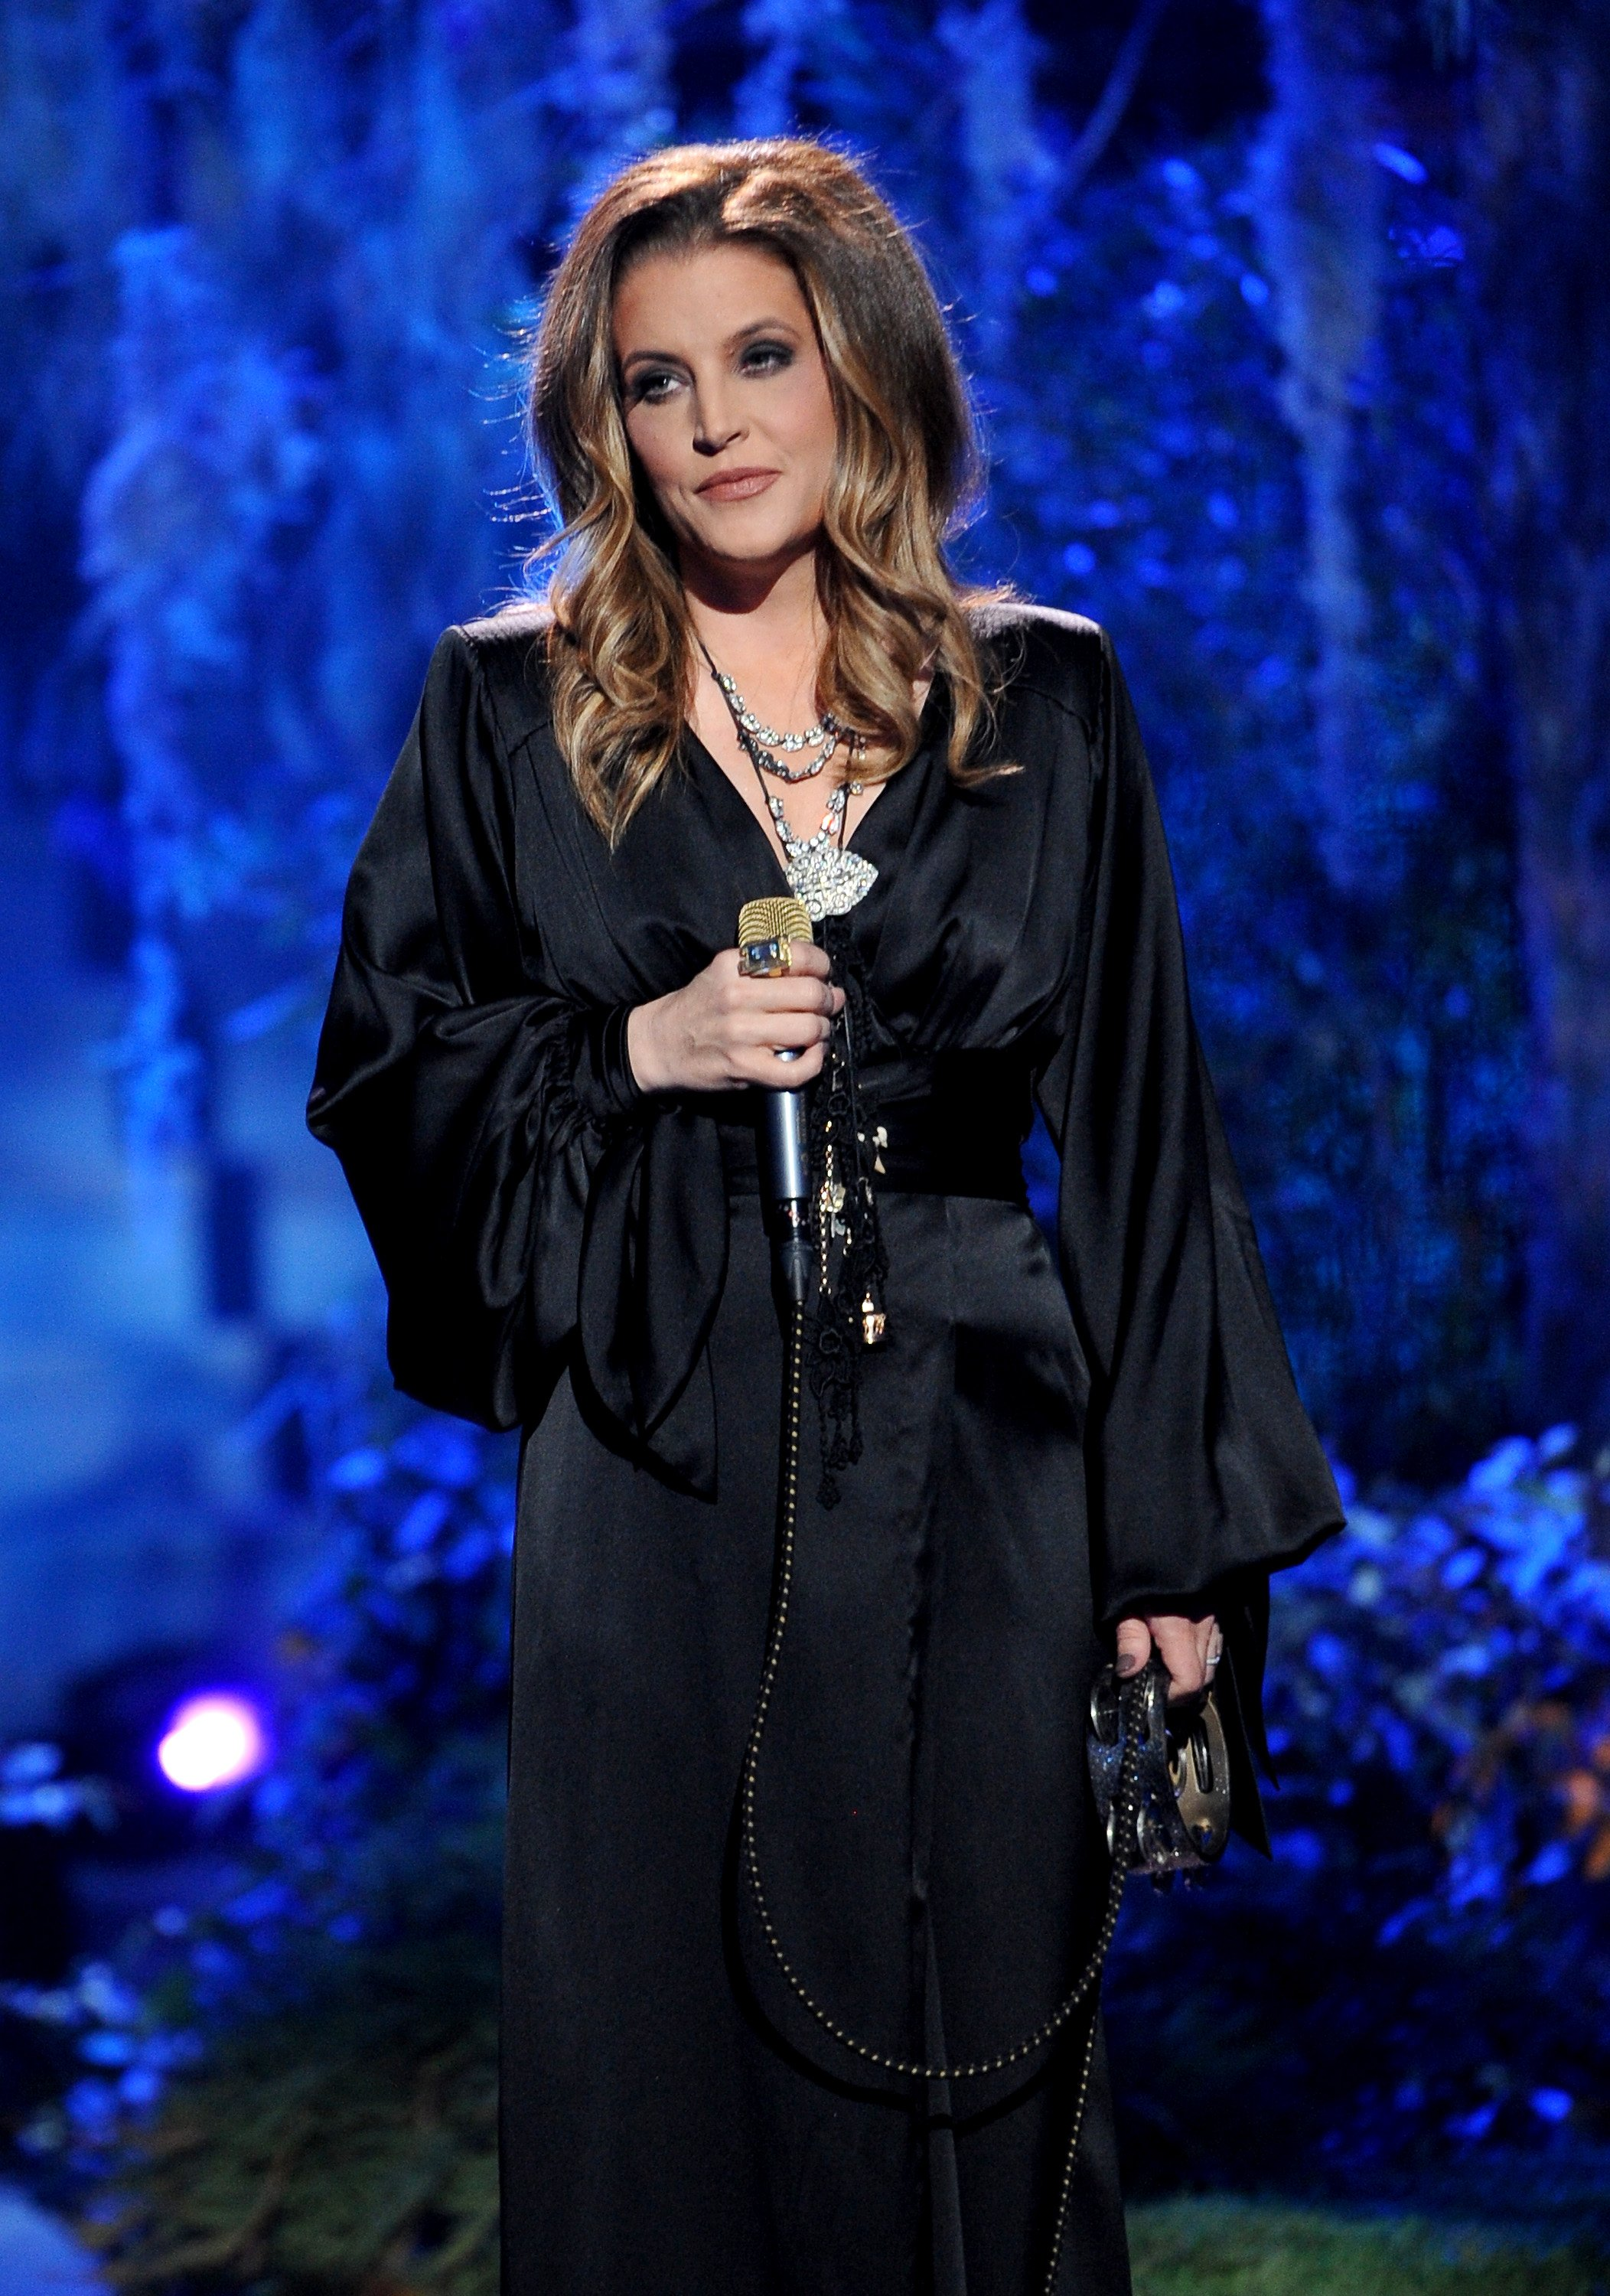 """Lisa Marie Presley performs onstage at FOX's """"American Idol"""" show on May 17, 2012, in Hollywood, California. 